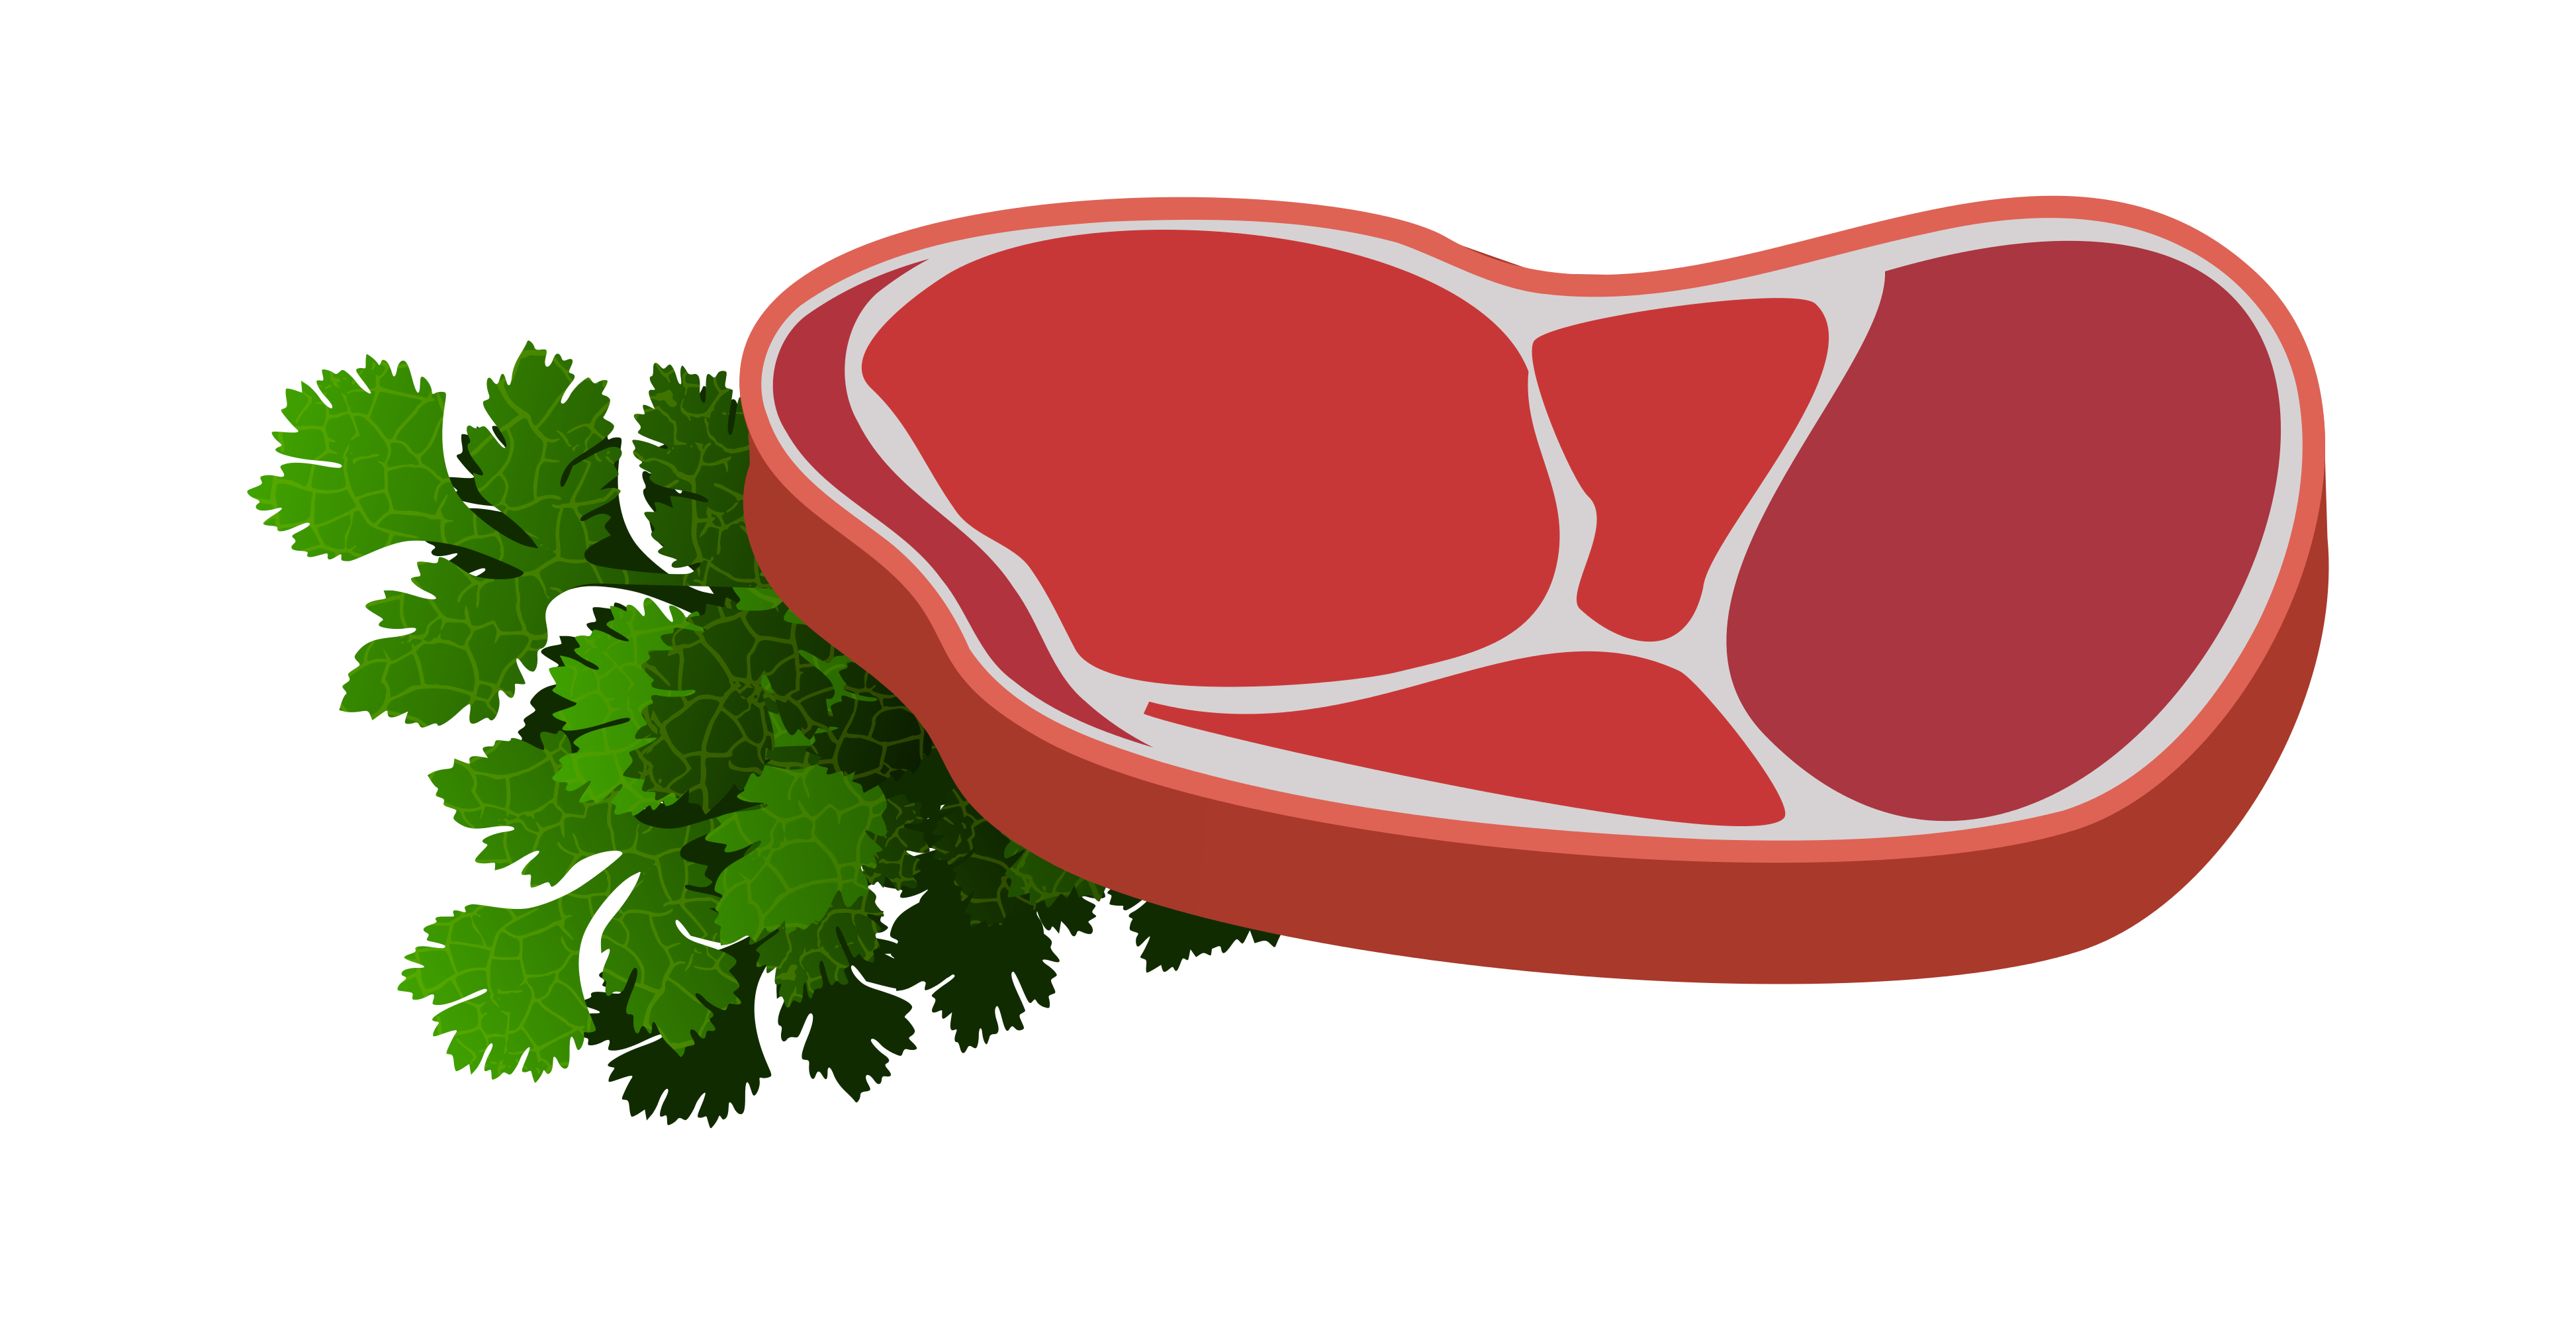 Raw Steak clipart 3892x2000.